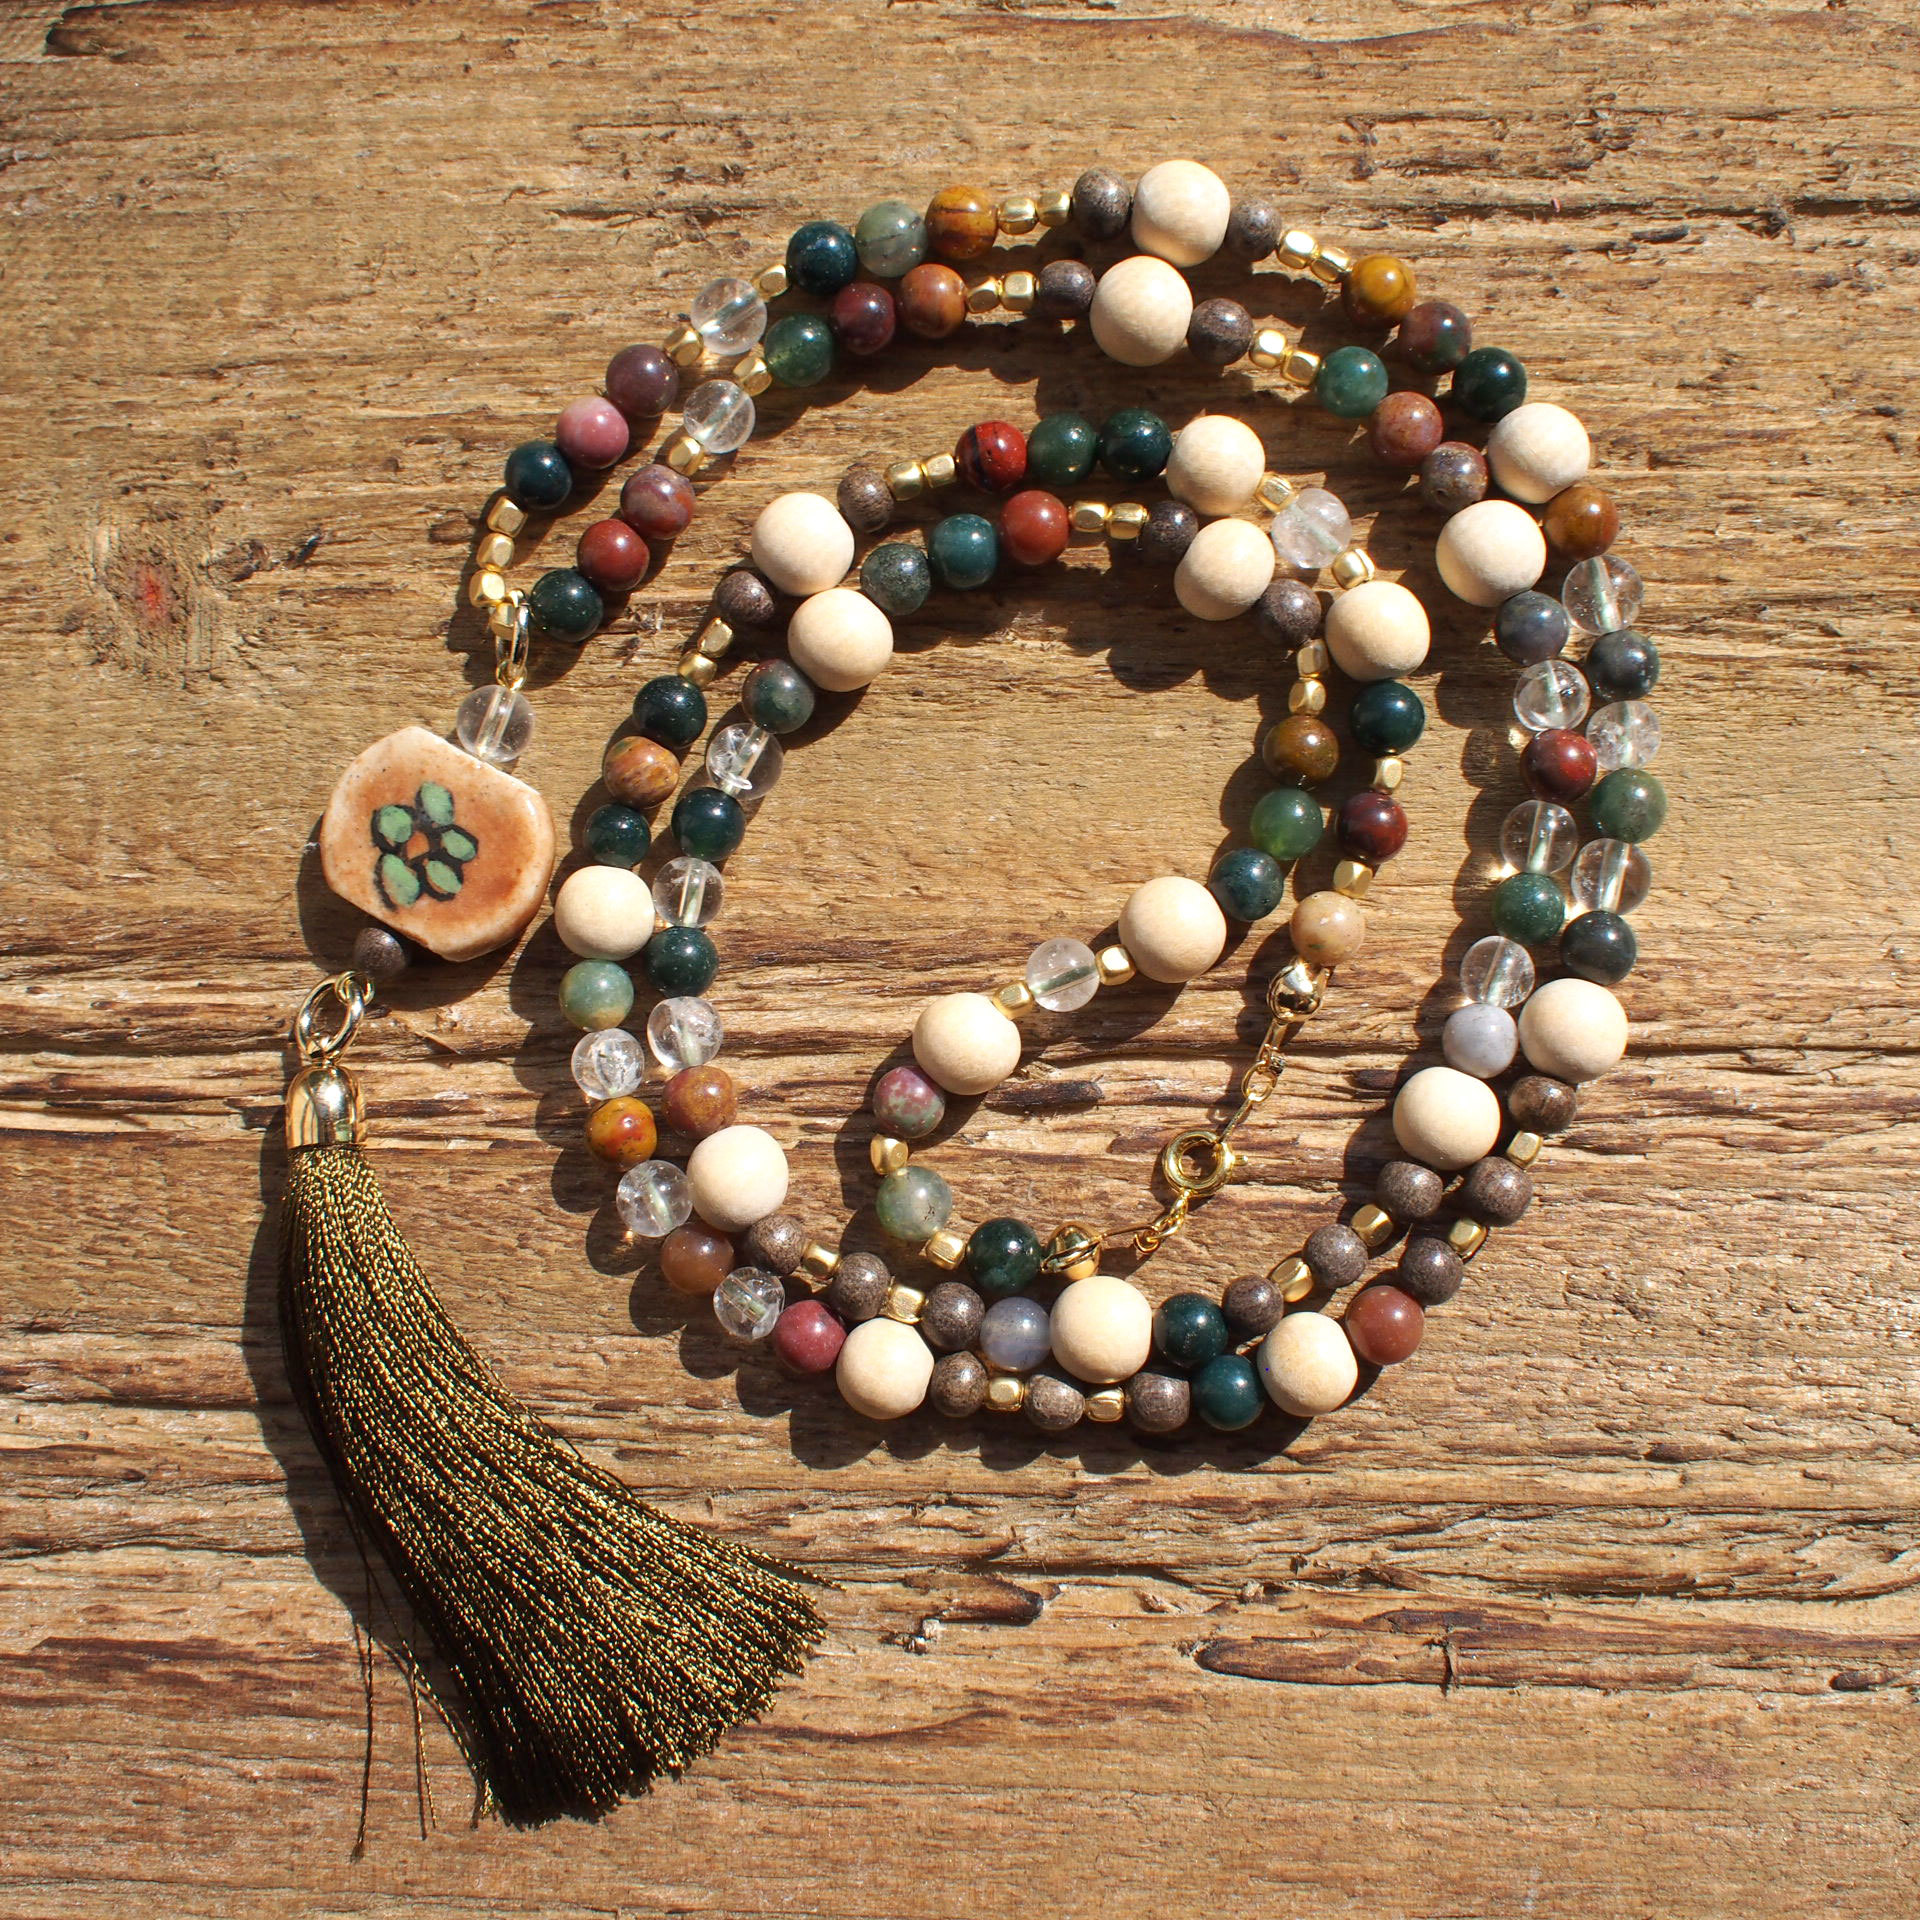 【Indian Agate】×【Crystal】Long Necklace